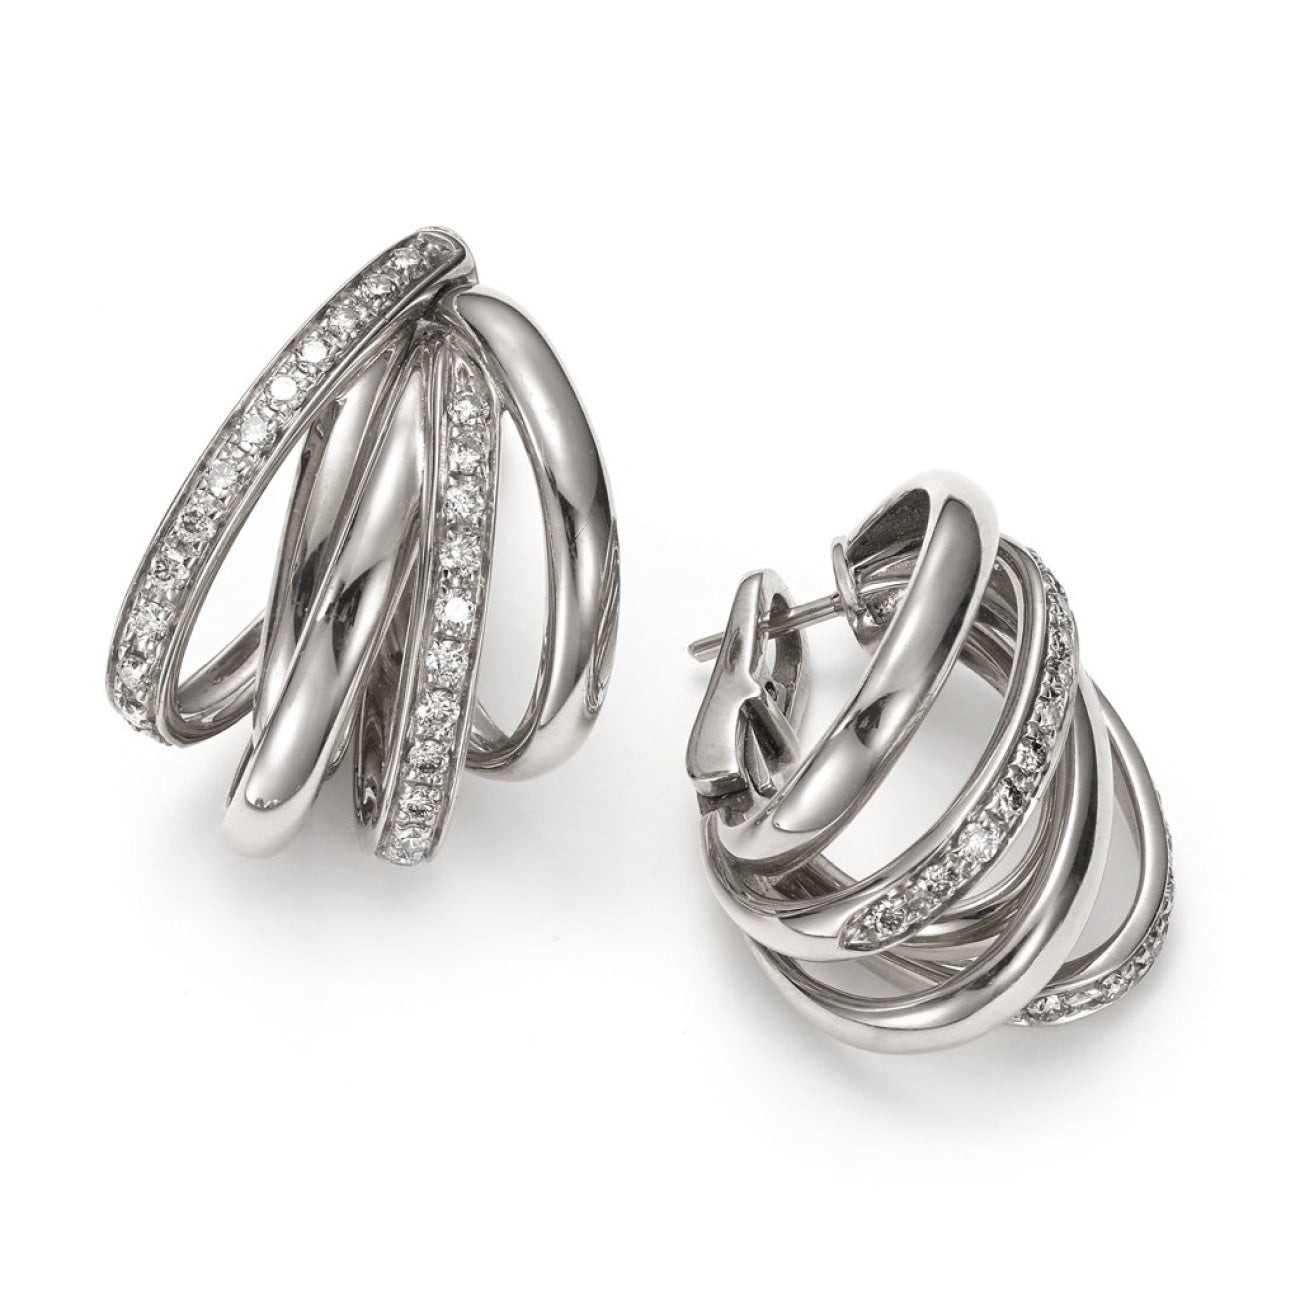 Mattioli Jewelry - Tibet Earrings in white gold and white diamonds | Manfredi Jewels